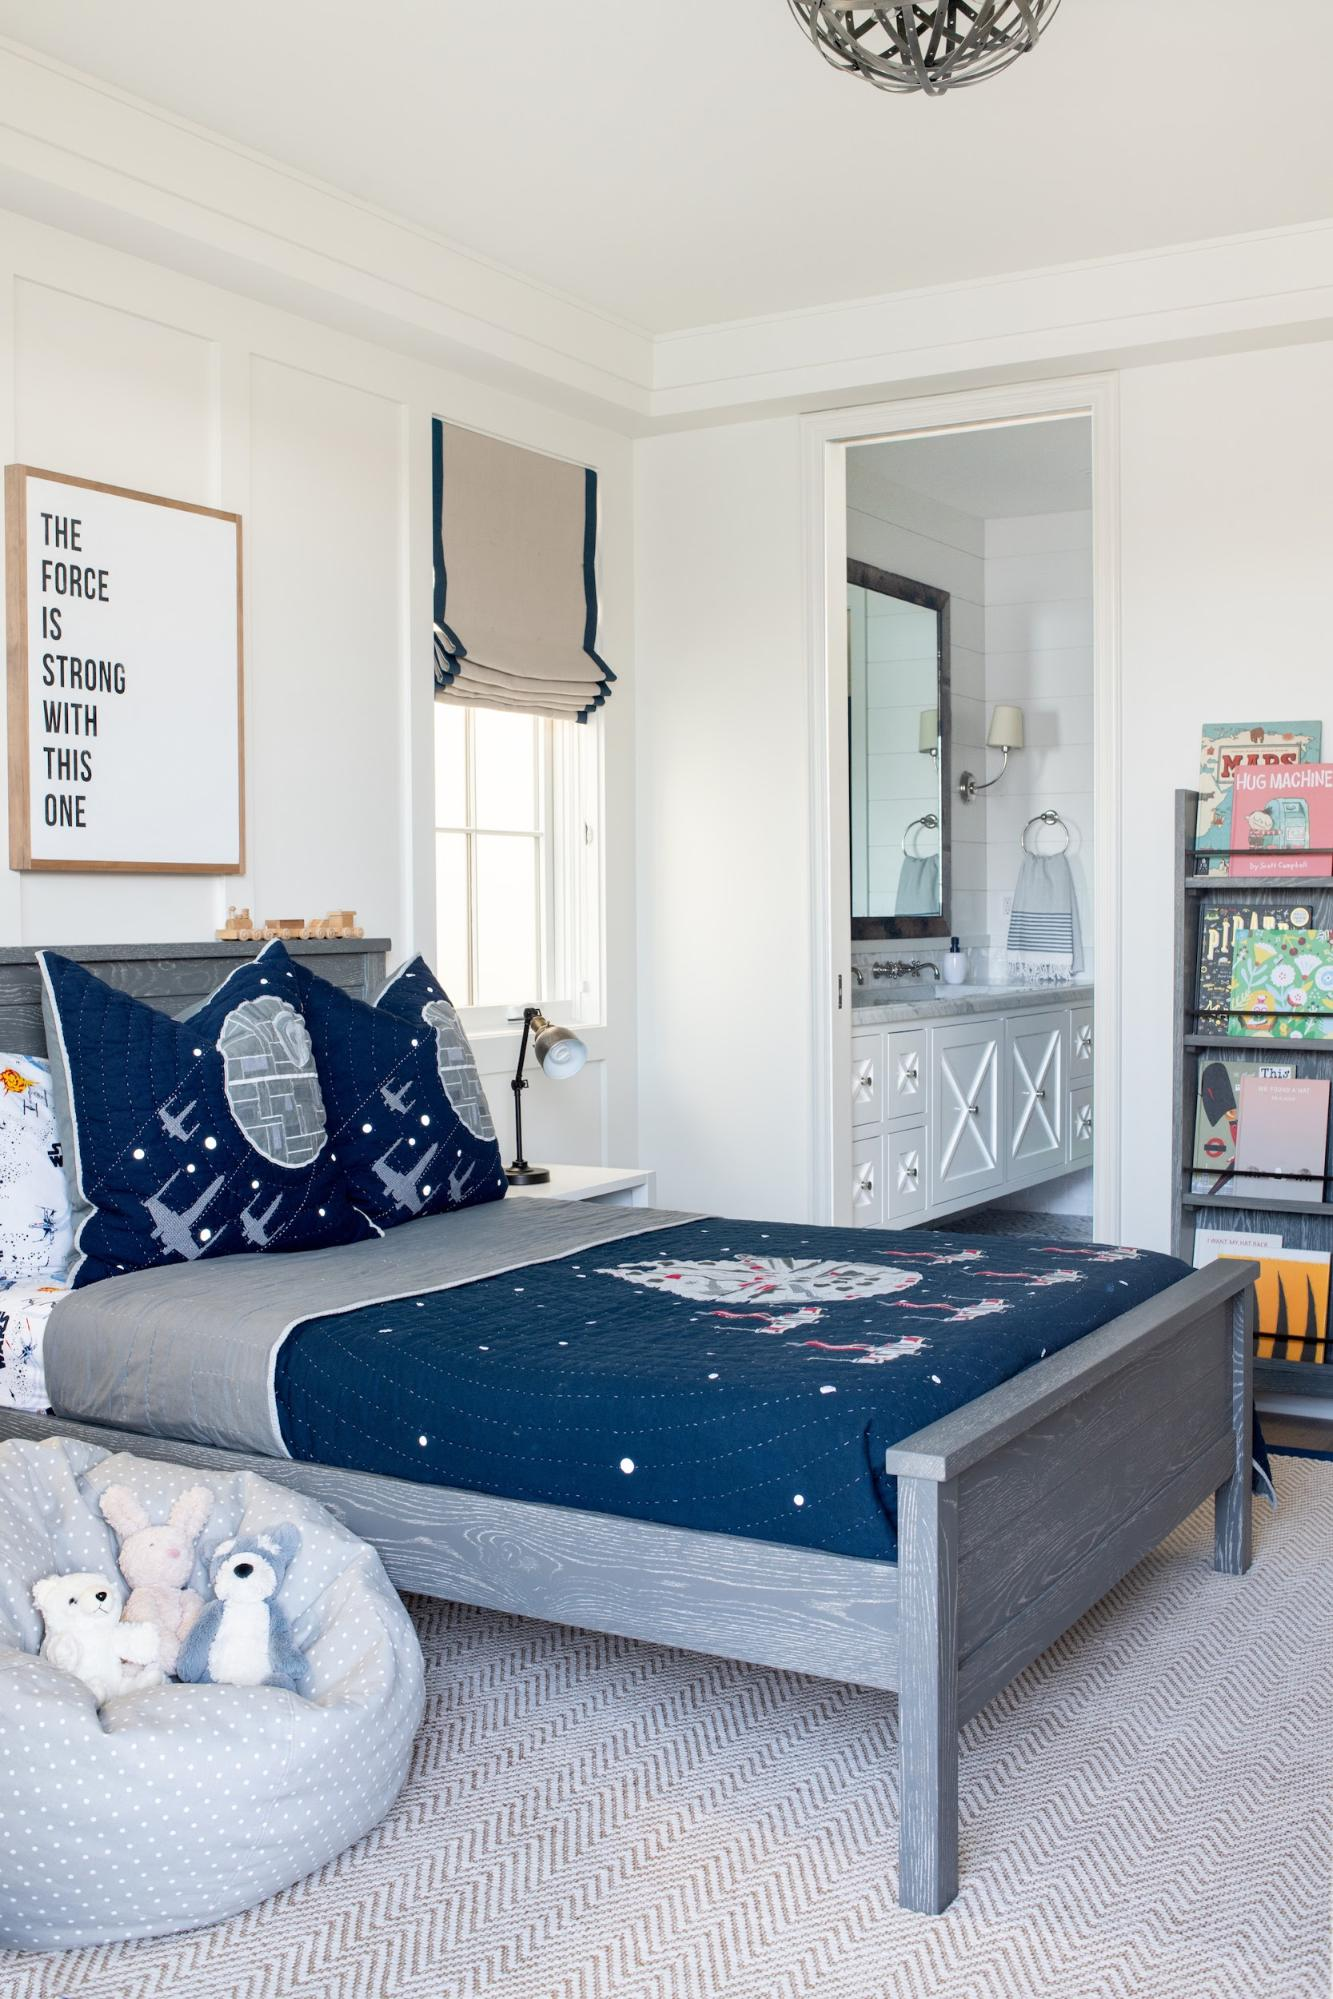 kid and pet friendly bedroom with Star Wars theme